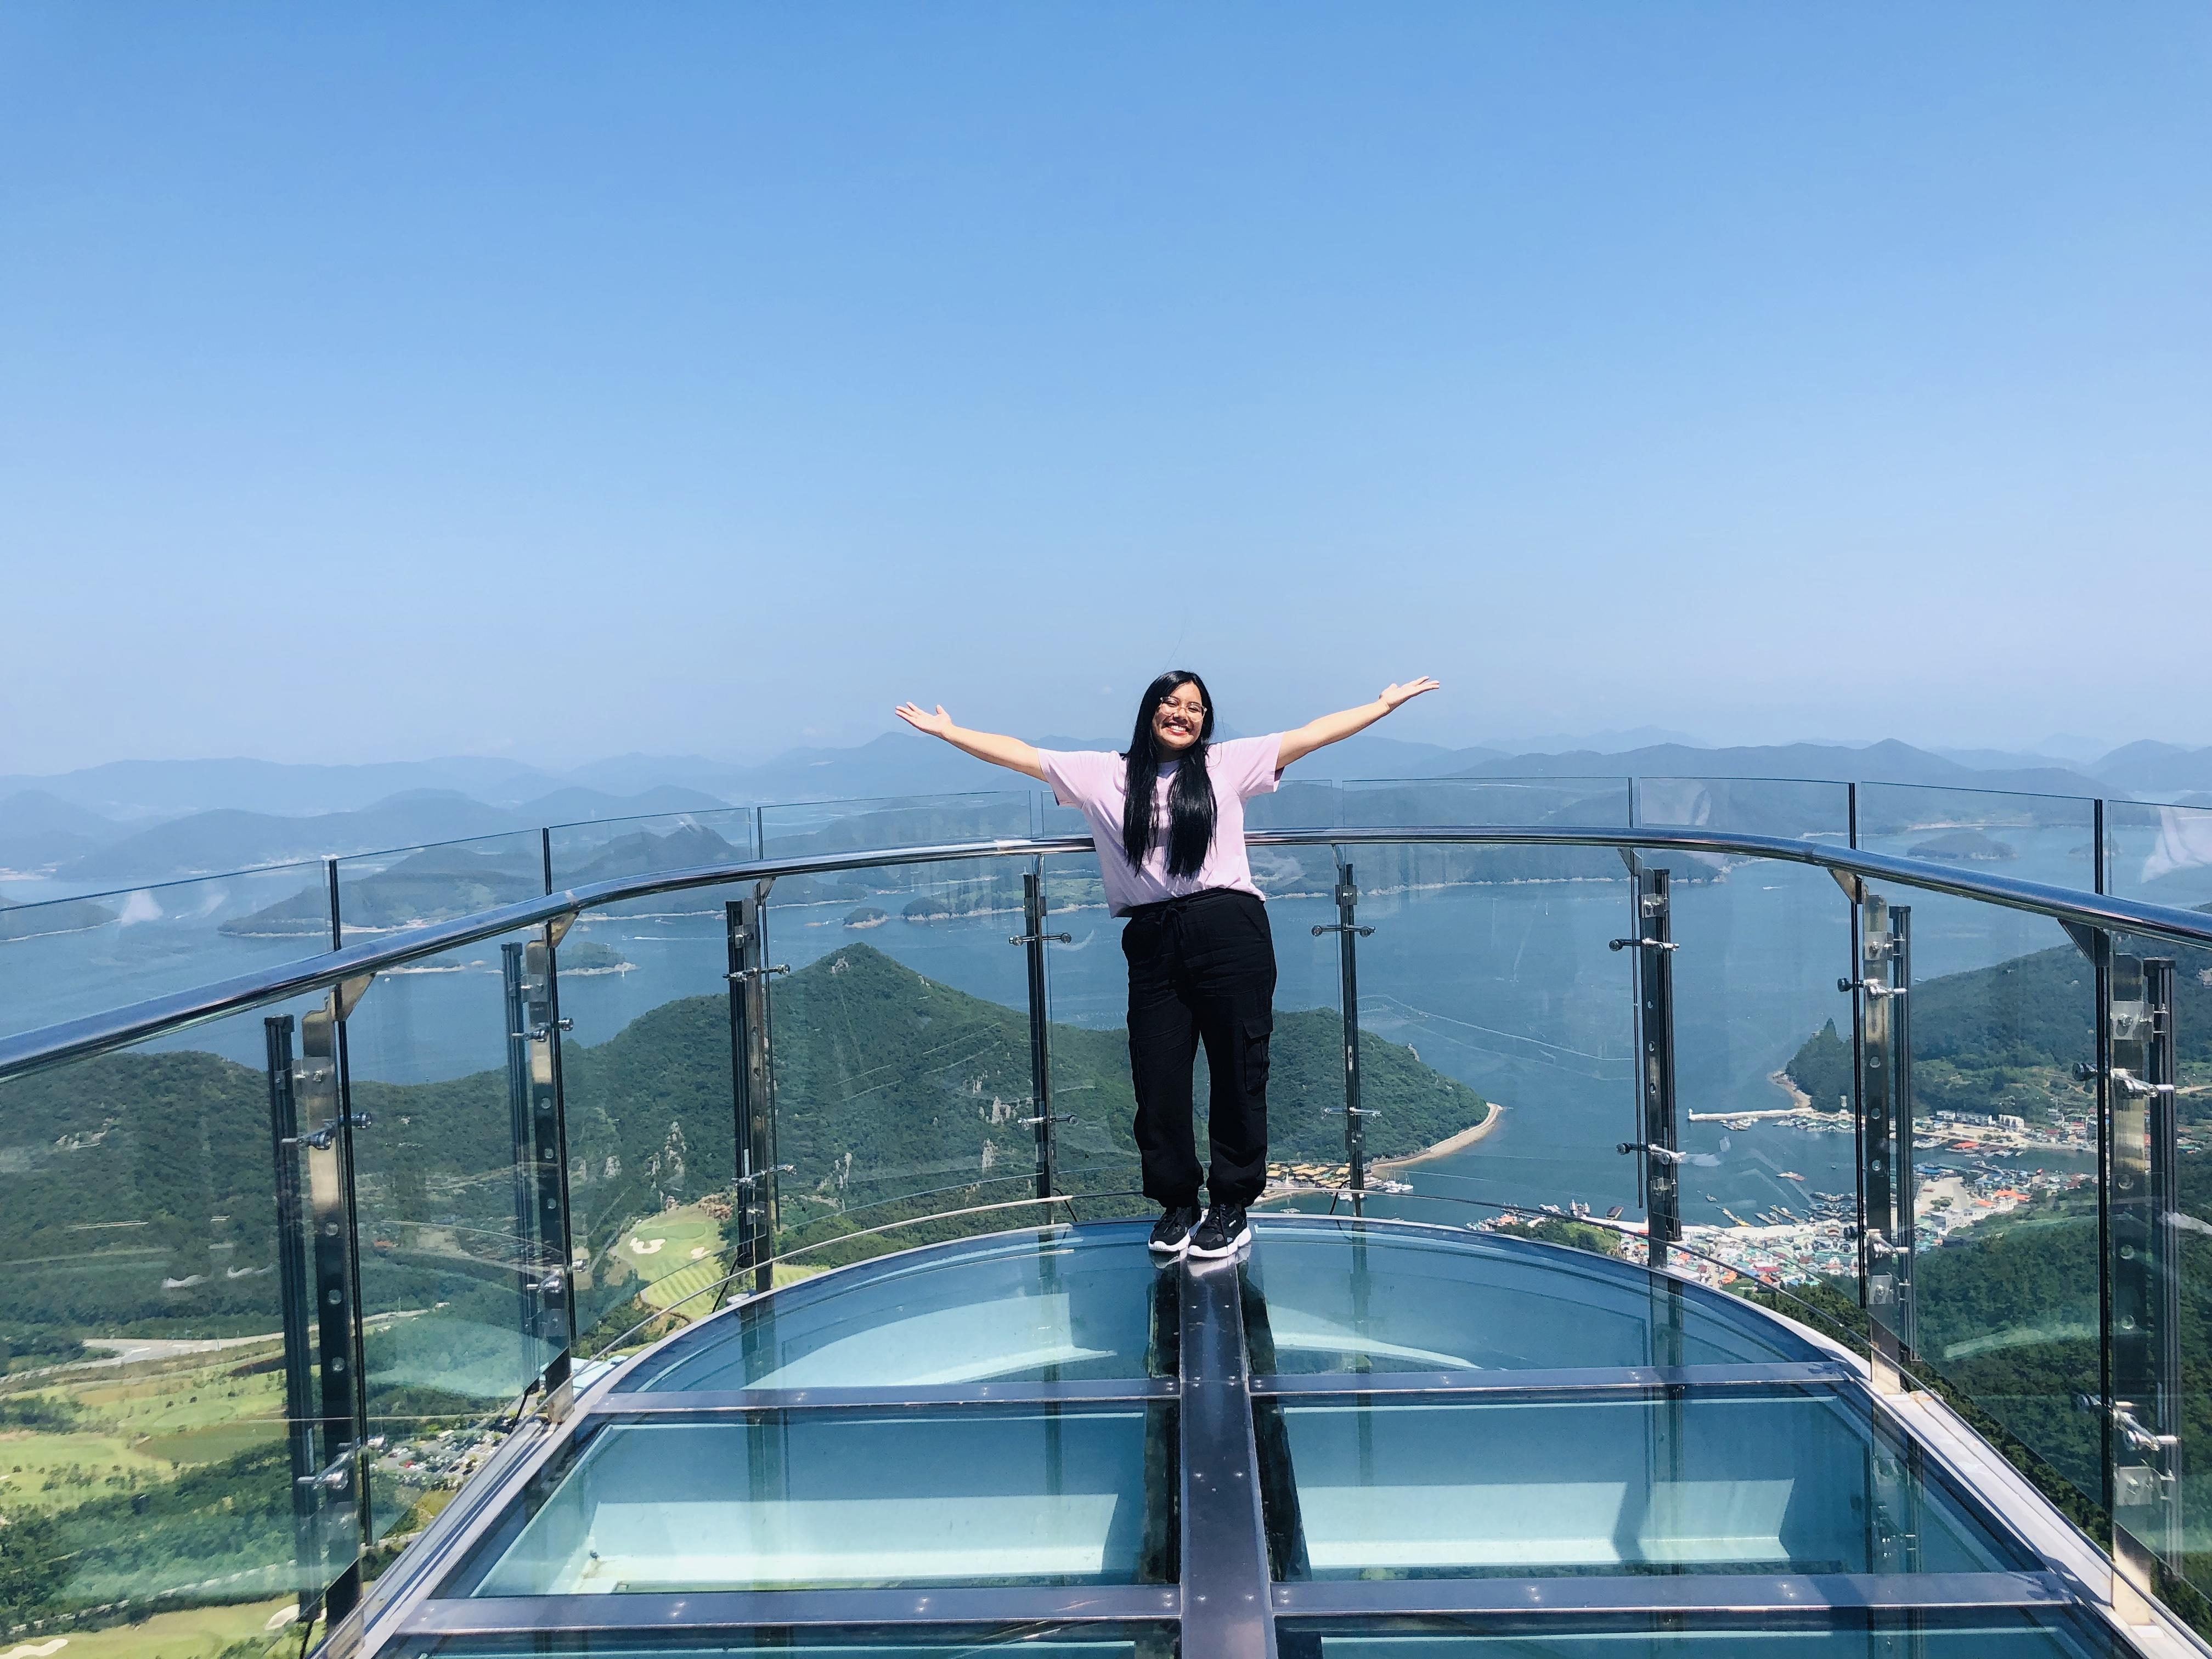 Amber Cabrera studying abroad at a viewing spot in South Korea